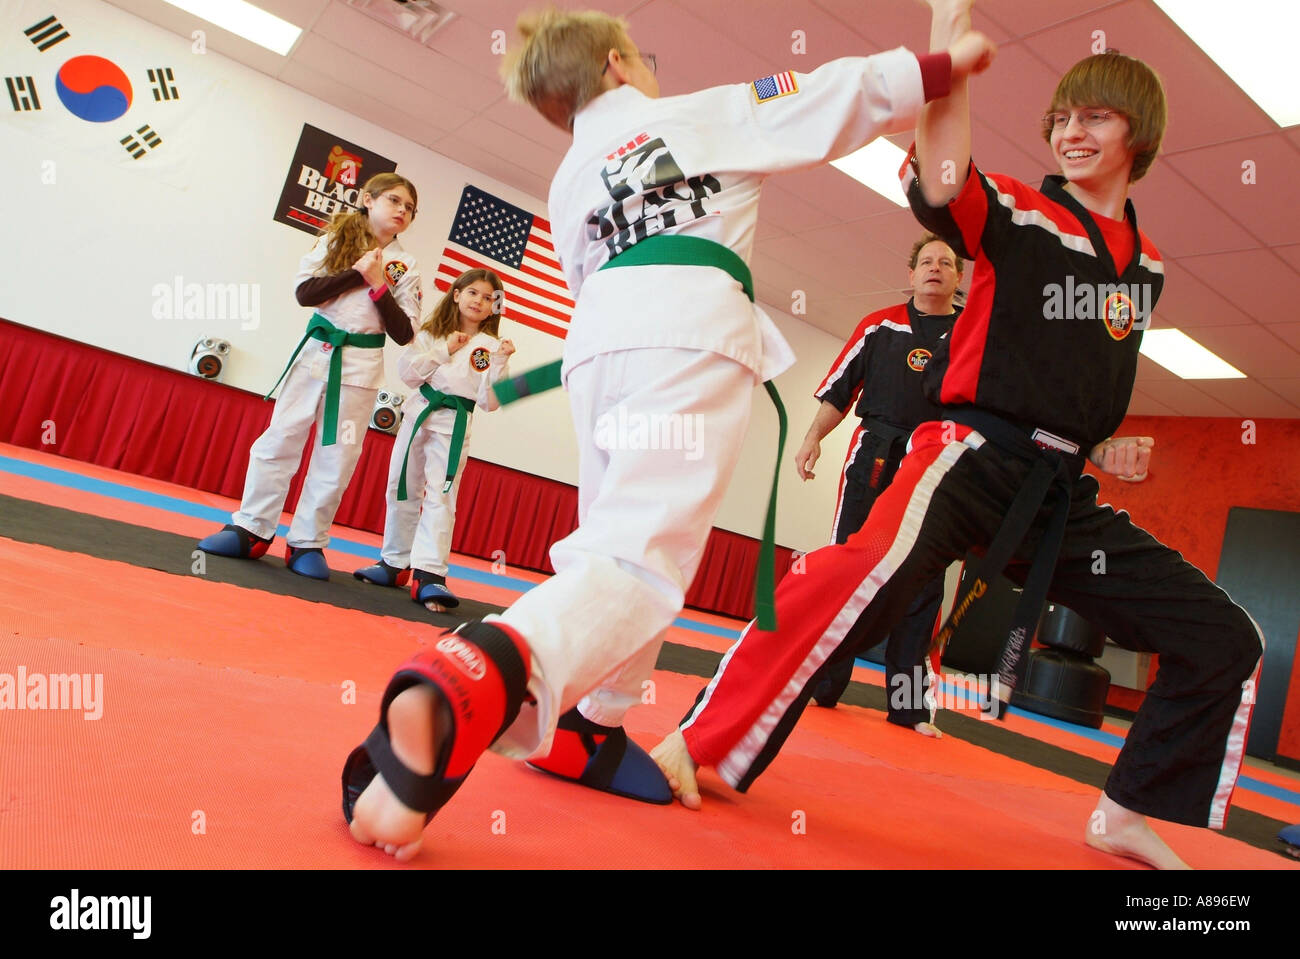 USA A martial arts Tae Kwon Do class at The Black Belt Academy Dominion Valley Virginia Stock Photo